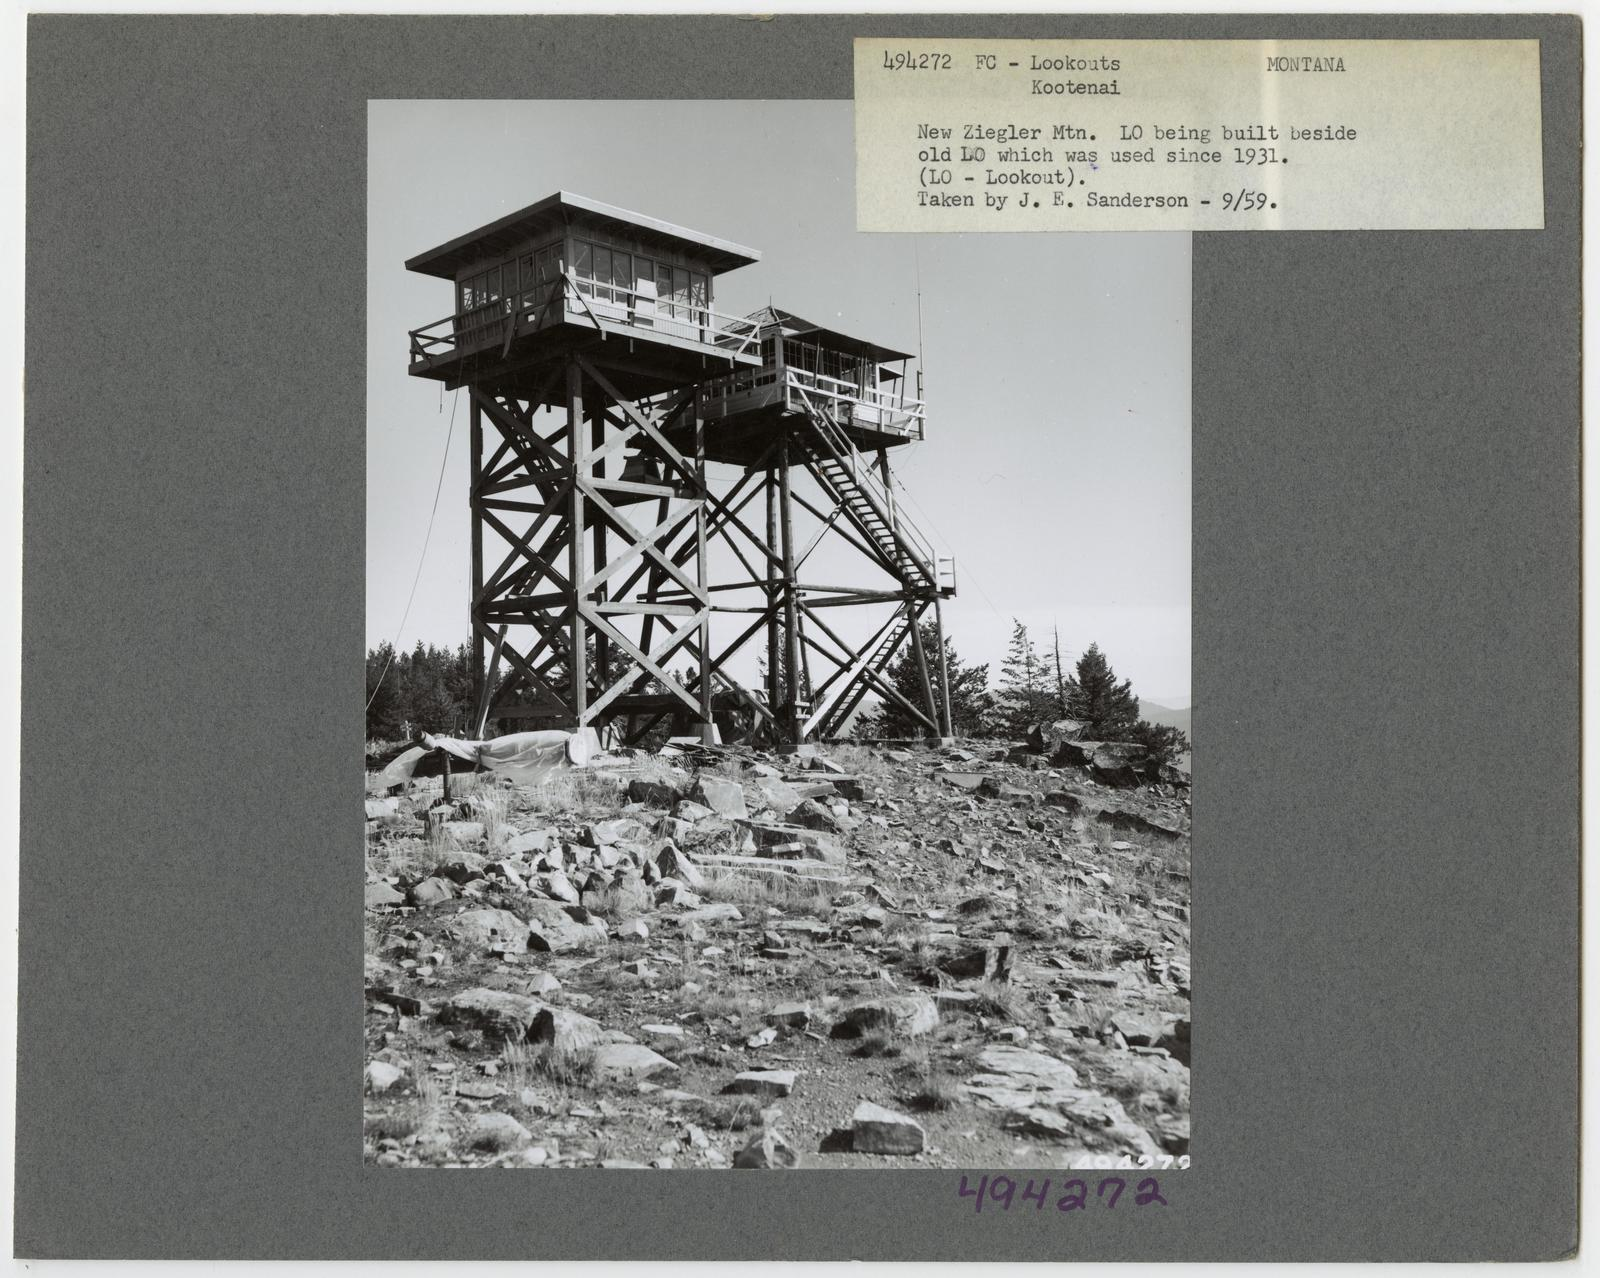 Fire Control: Lookouts - Montana